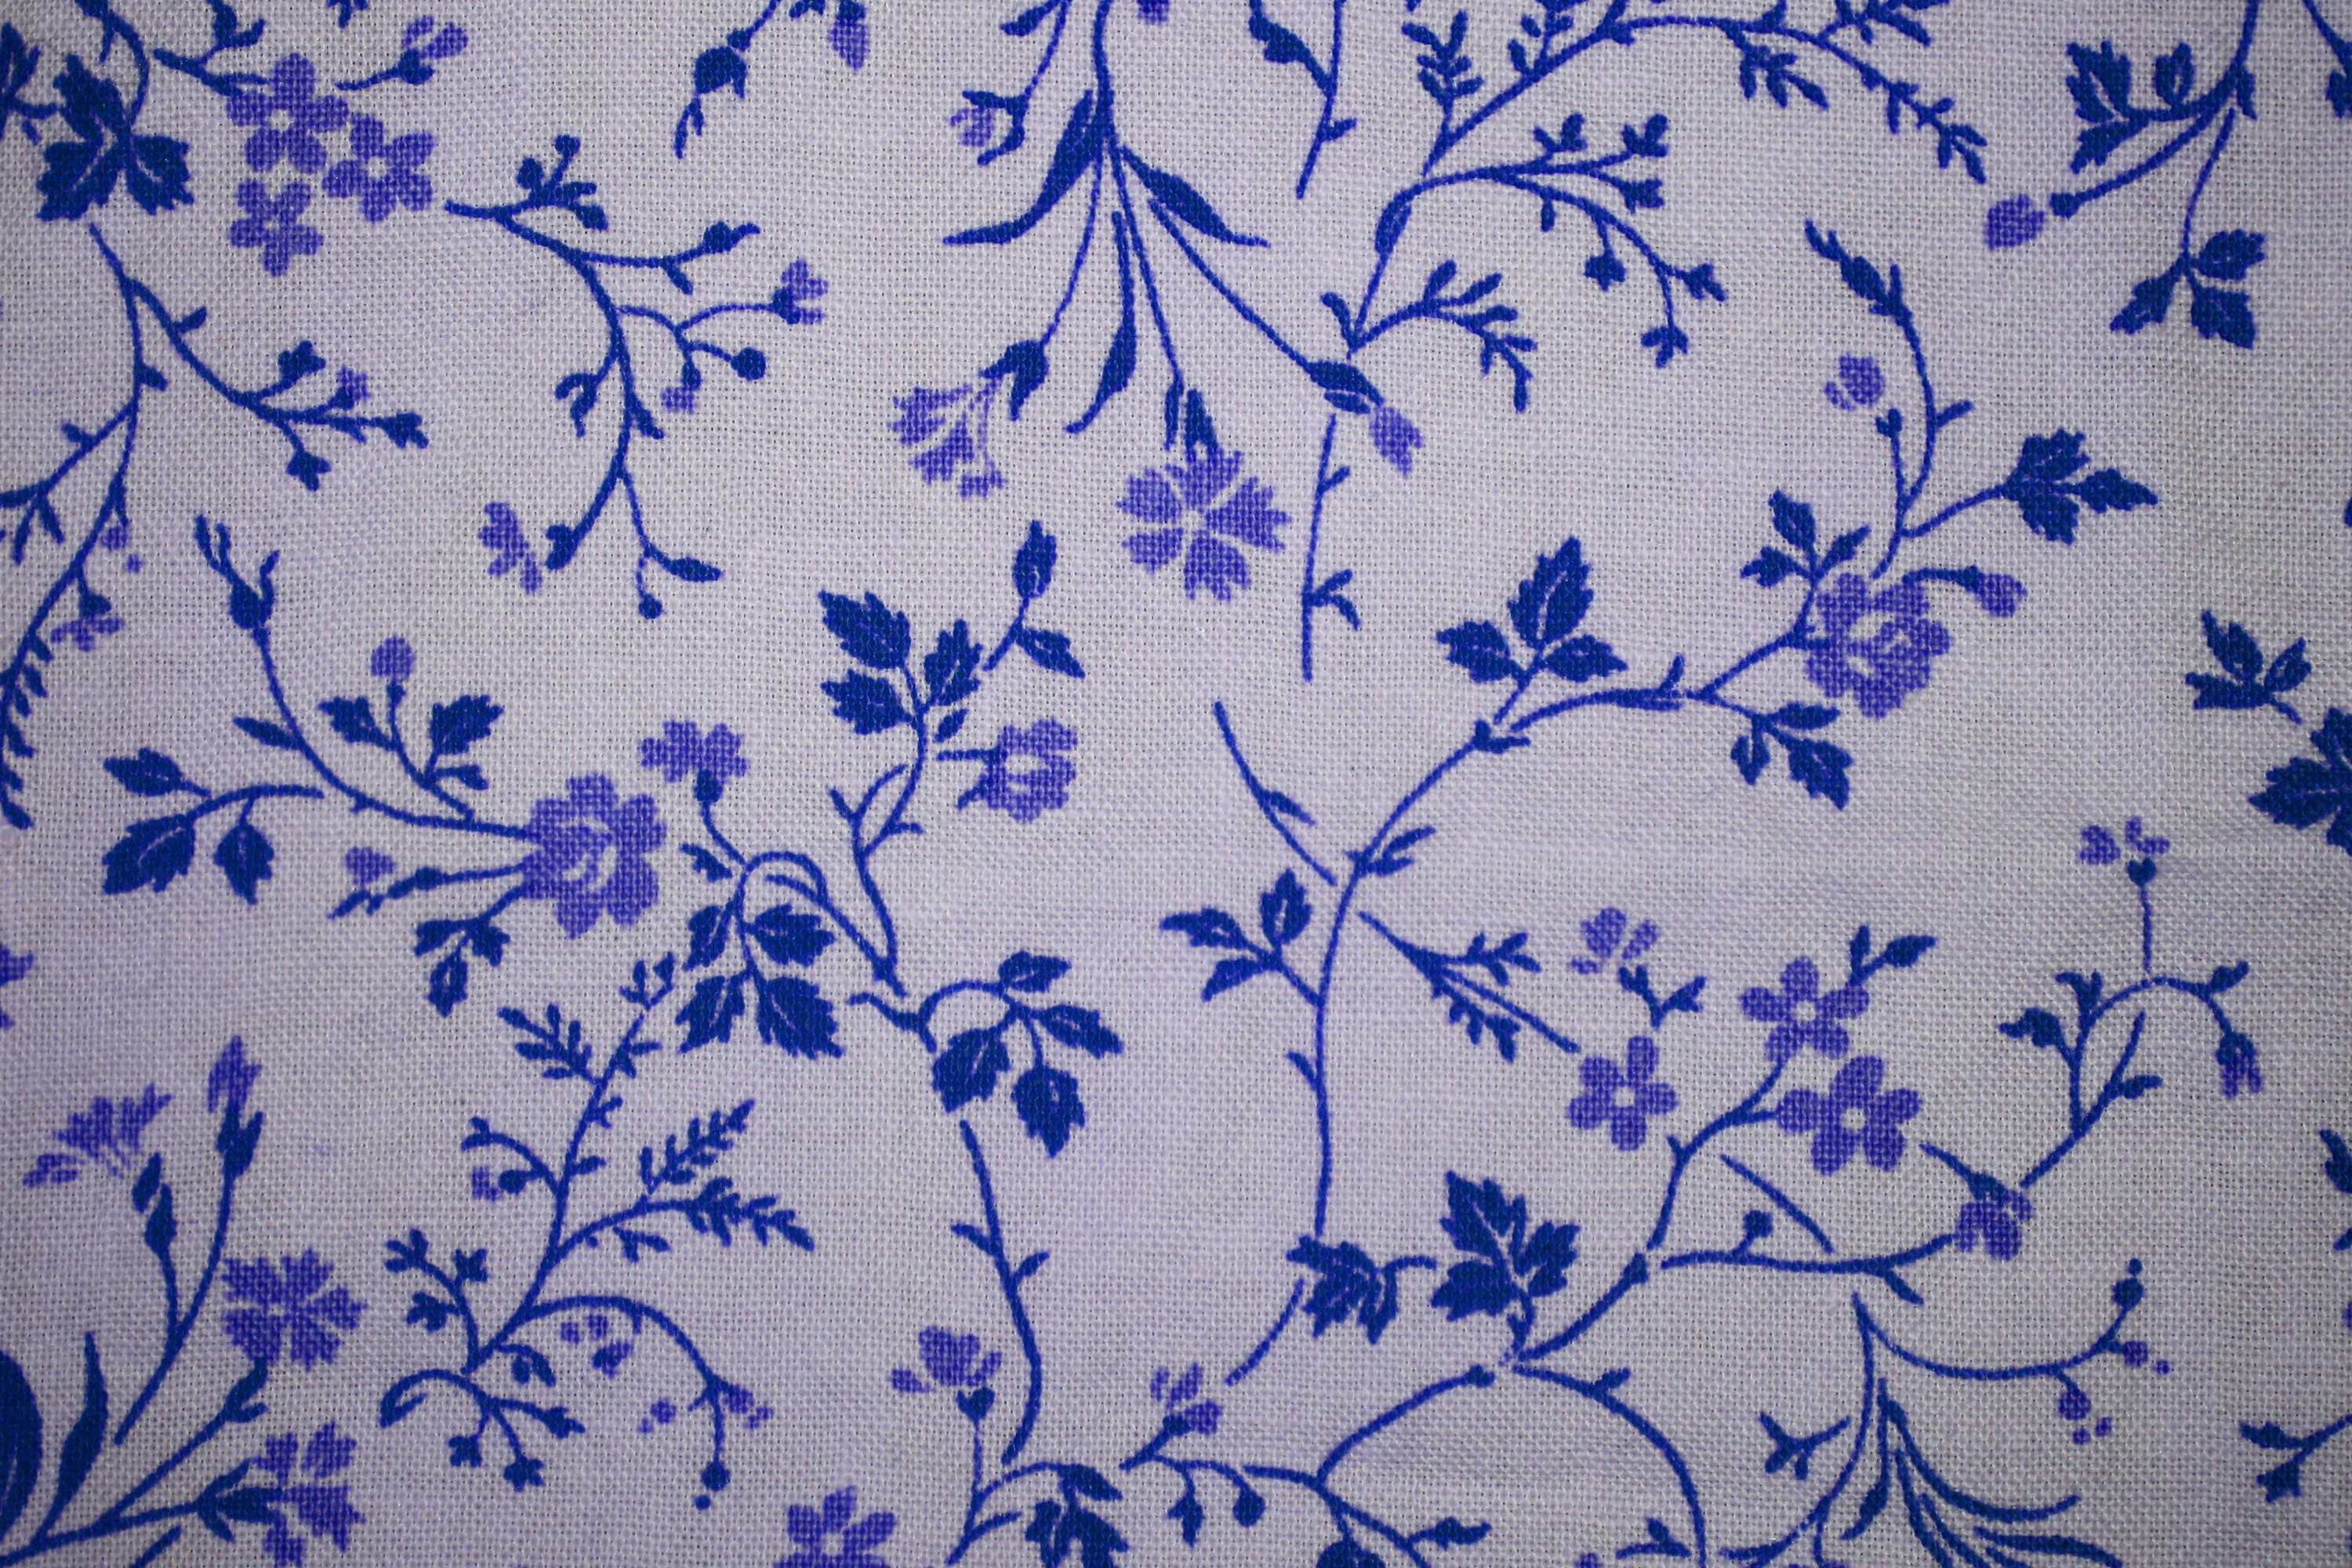 Blue On White Floral Print Fabric Texture Picture Free Photograph